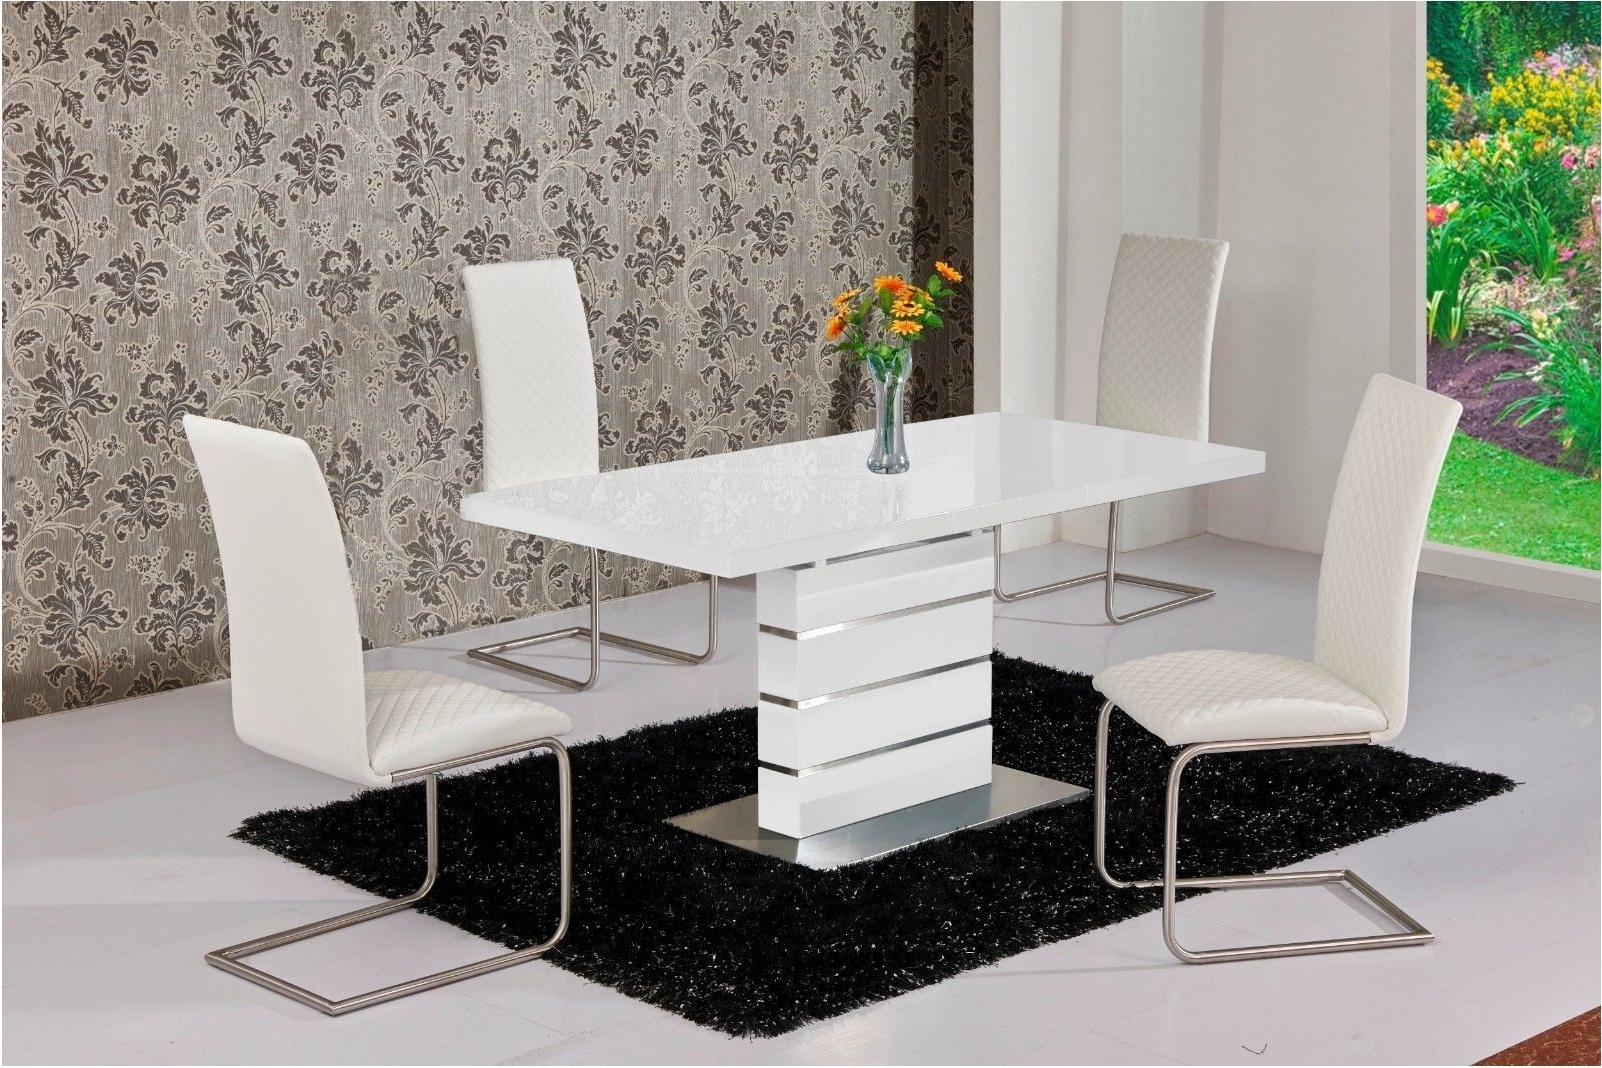 Widely Used Extendable Dining Tables And Chairs Intended For Magnificent Mace High Gloss Extending 120 160 Dining Table Chair Set (View 25 of 25)